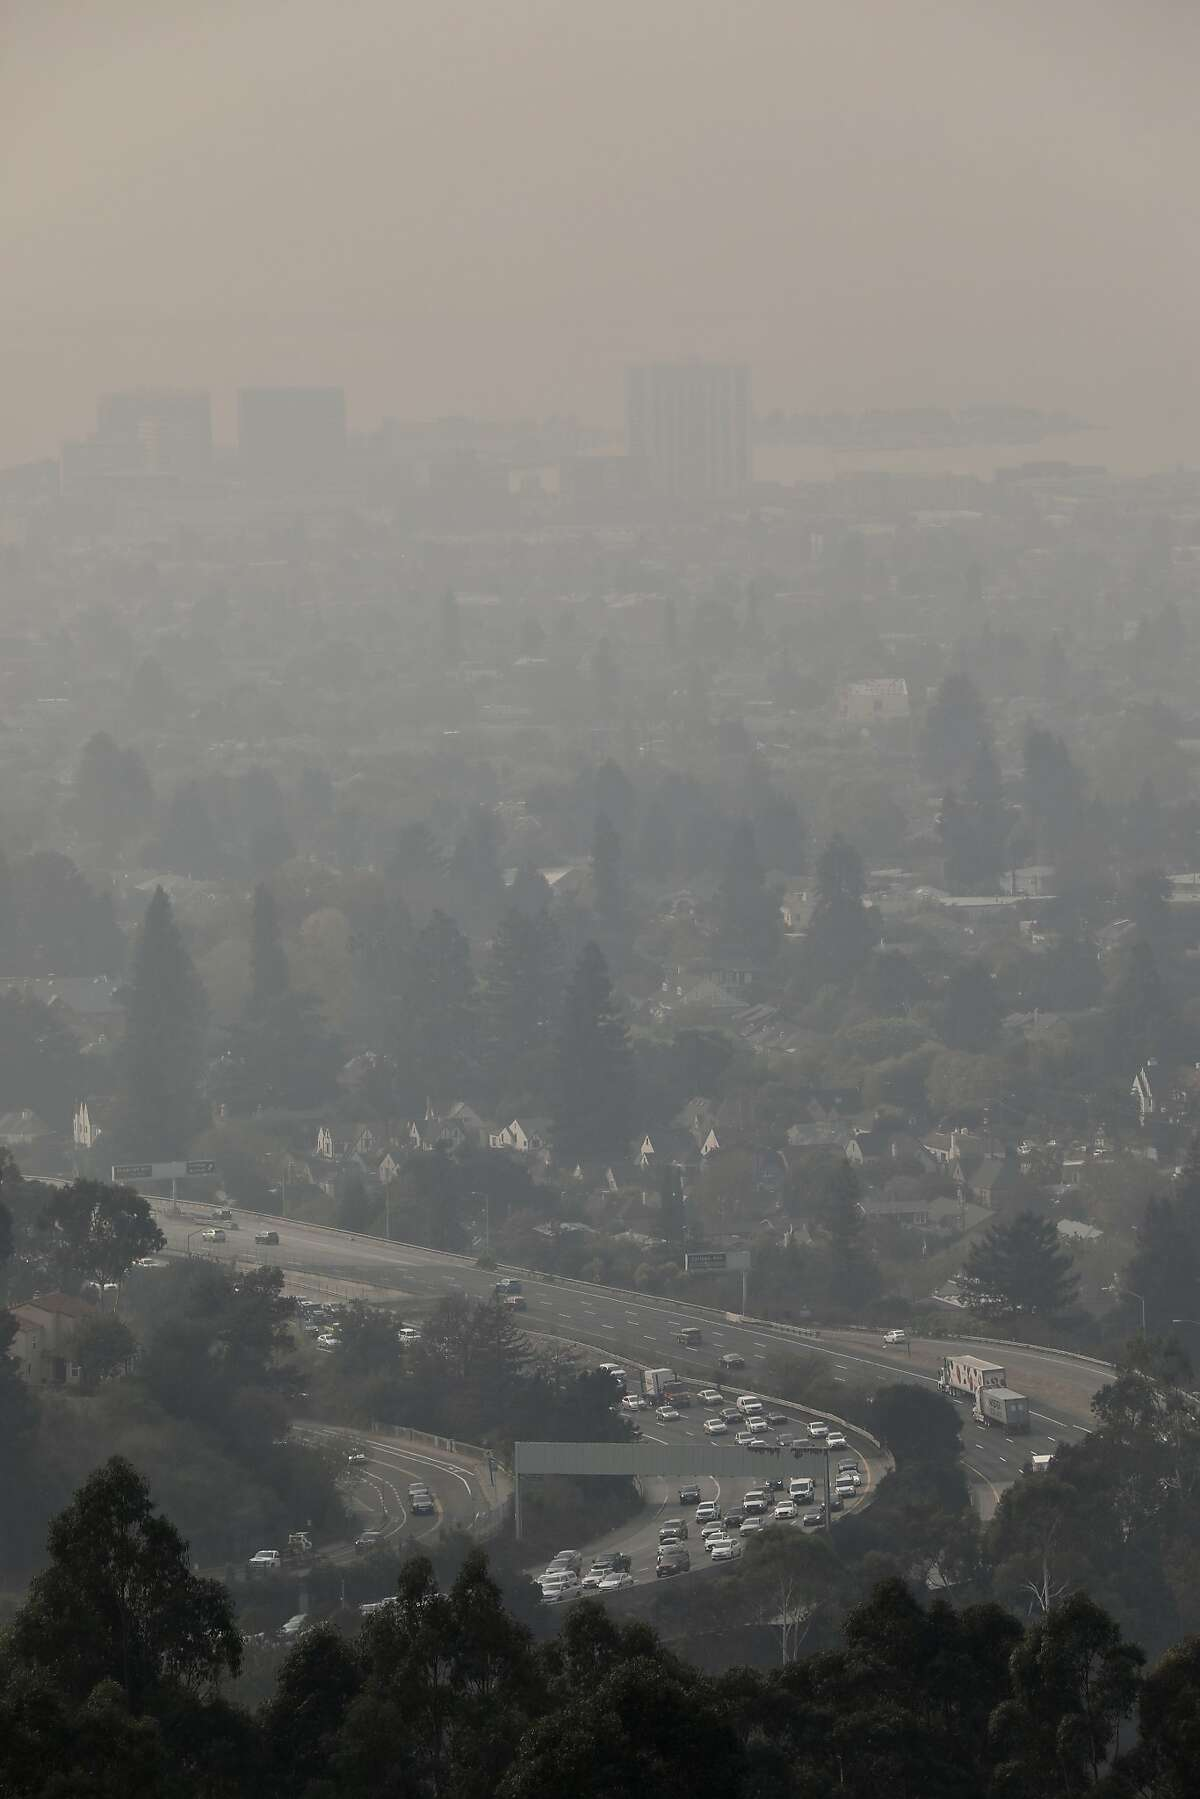 Smoky air fills the sky in Oakland, as seen from Hiller Highlands. Public schools in Oakland kept students inside for physical education classes.